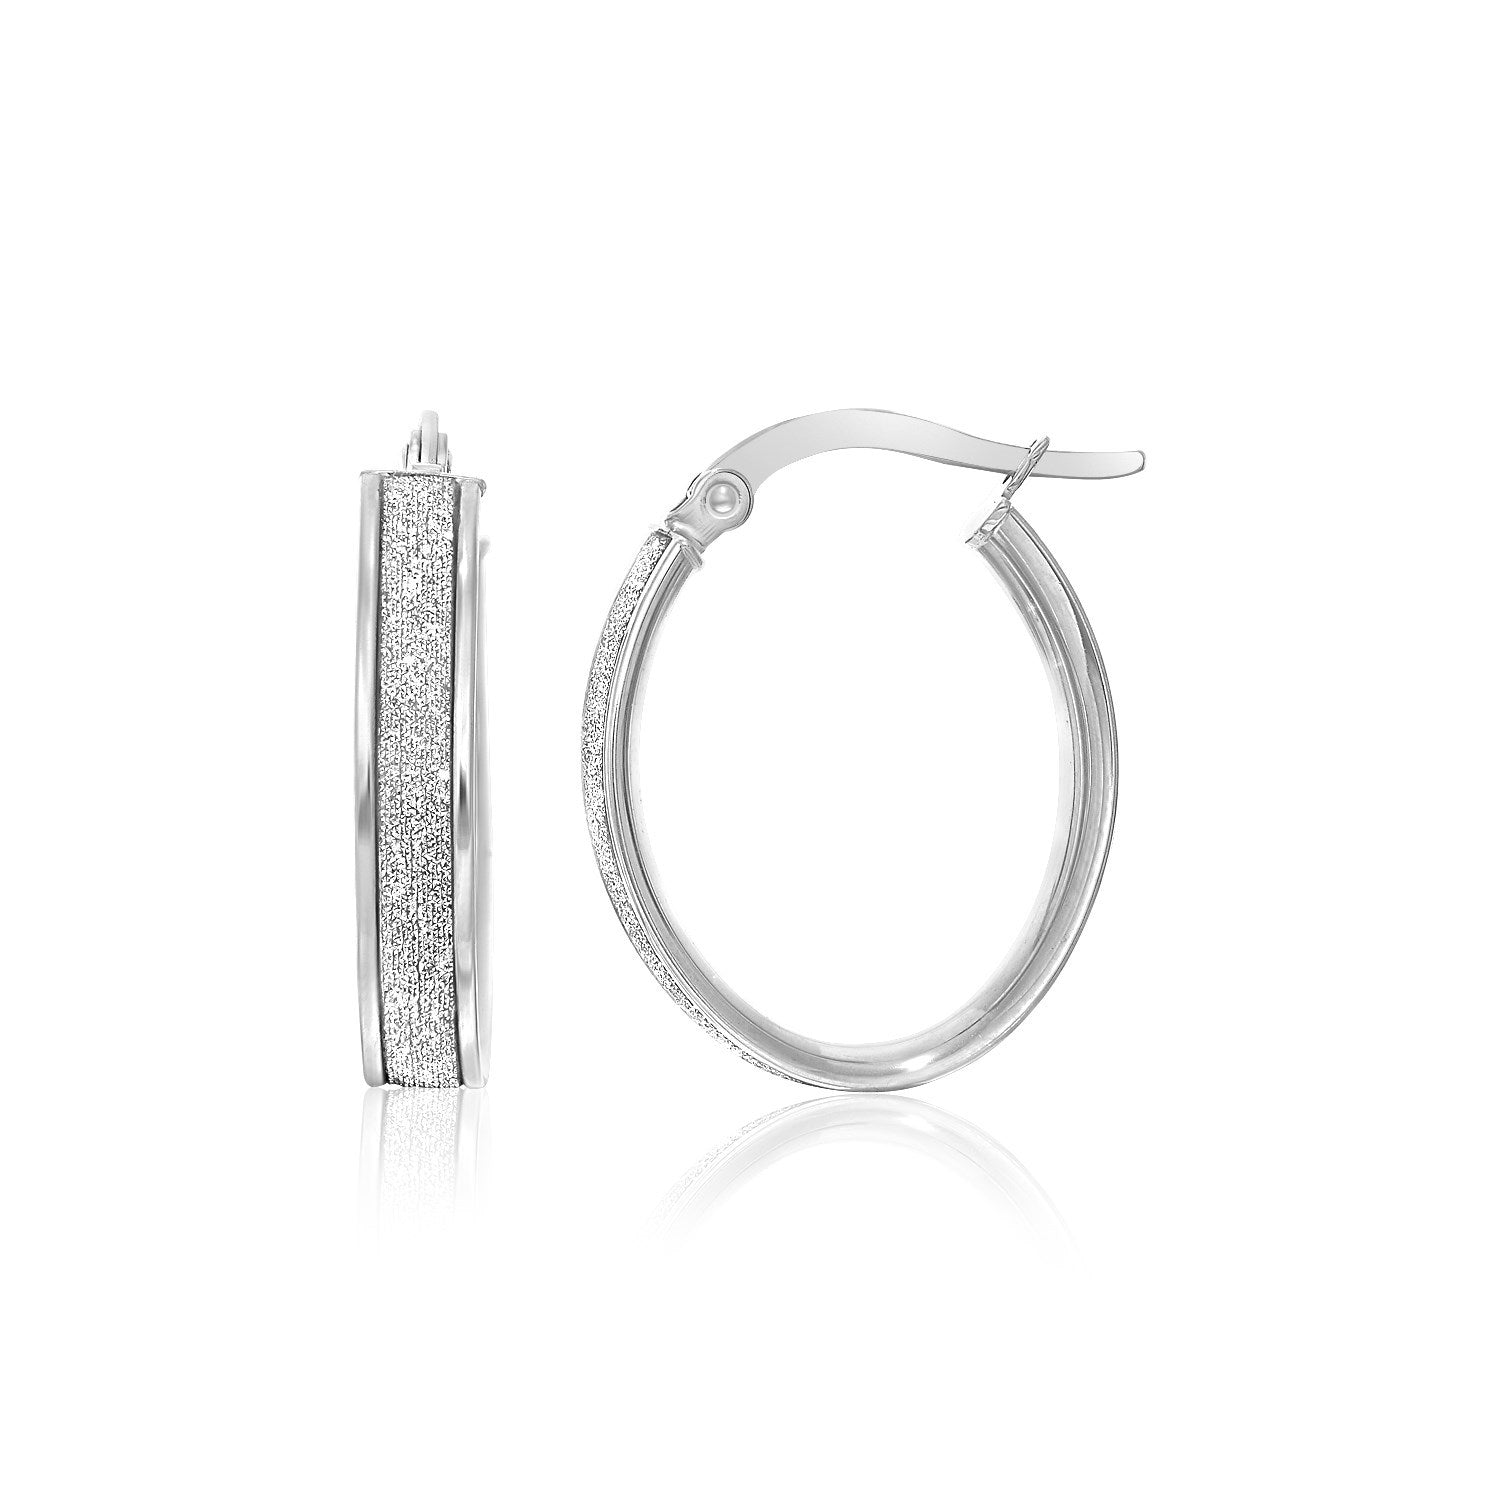 14K White Gold Glitter Center Oval Hoop Earrings